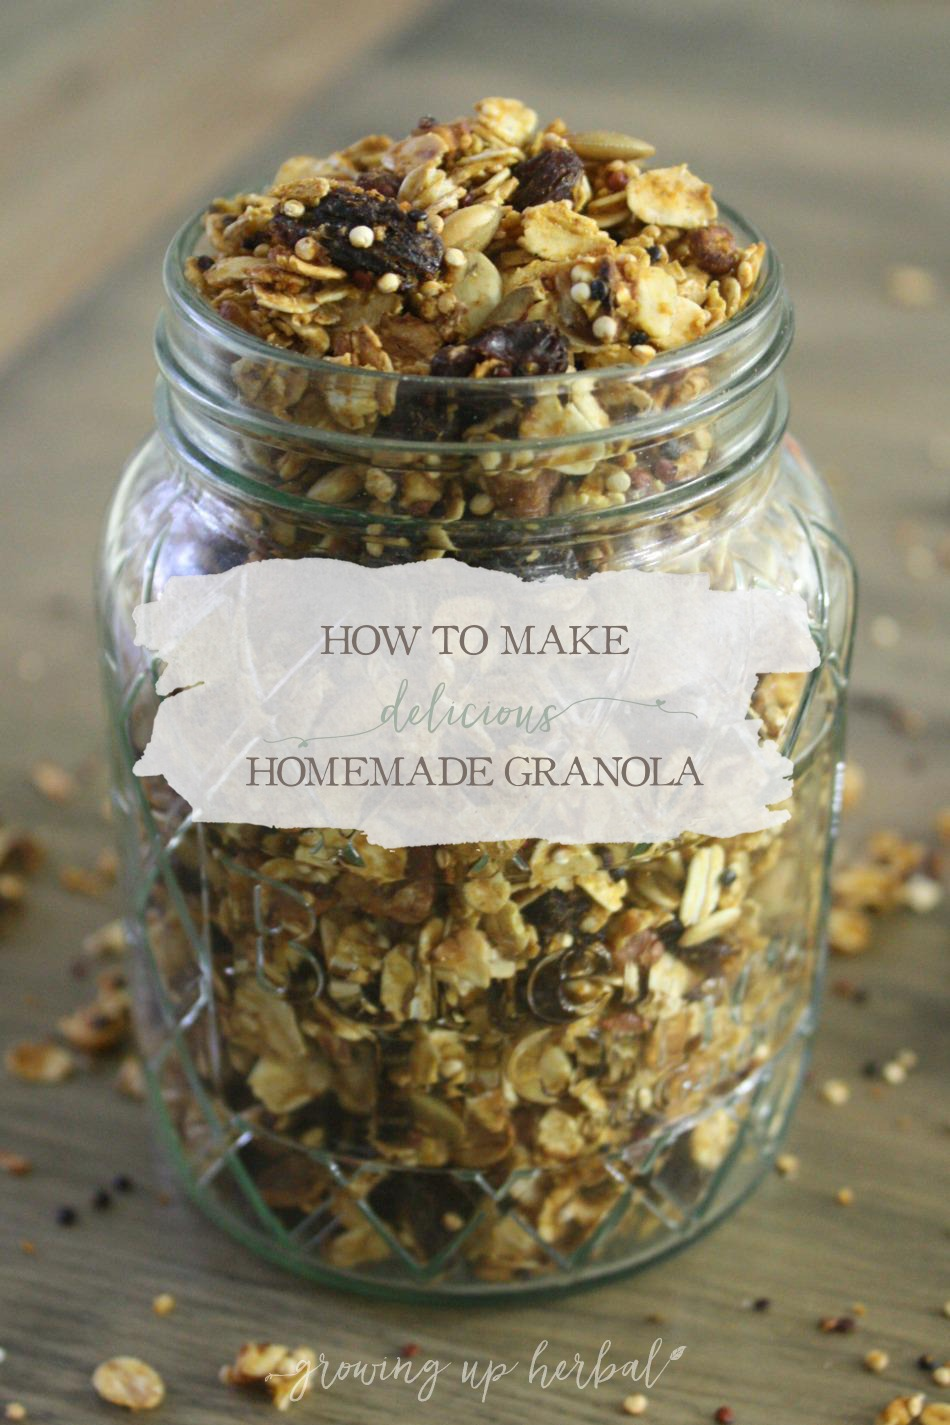 How To Make Delicious Homemade Granola | Growing Up Herbal | Make breakfast easy and healthy with this delicious homemade granola recipe!